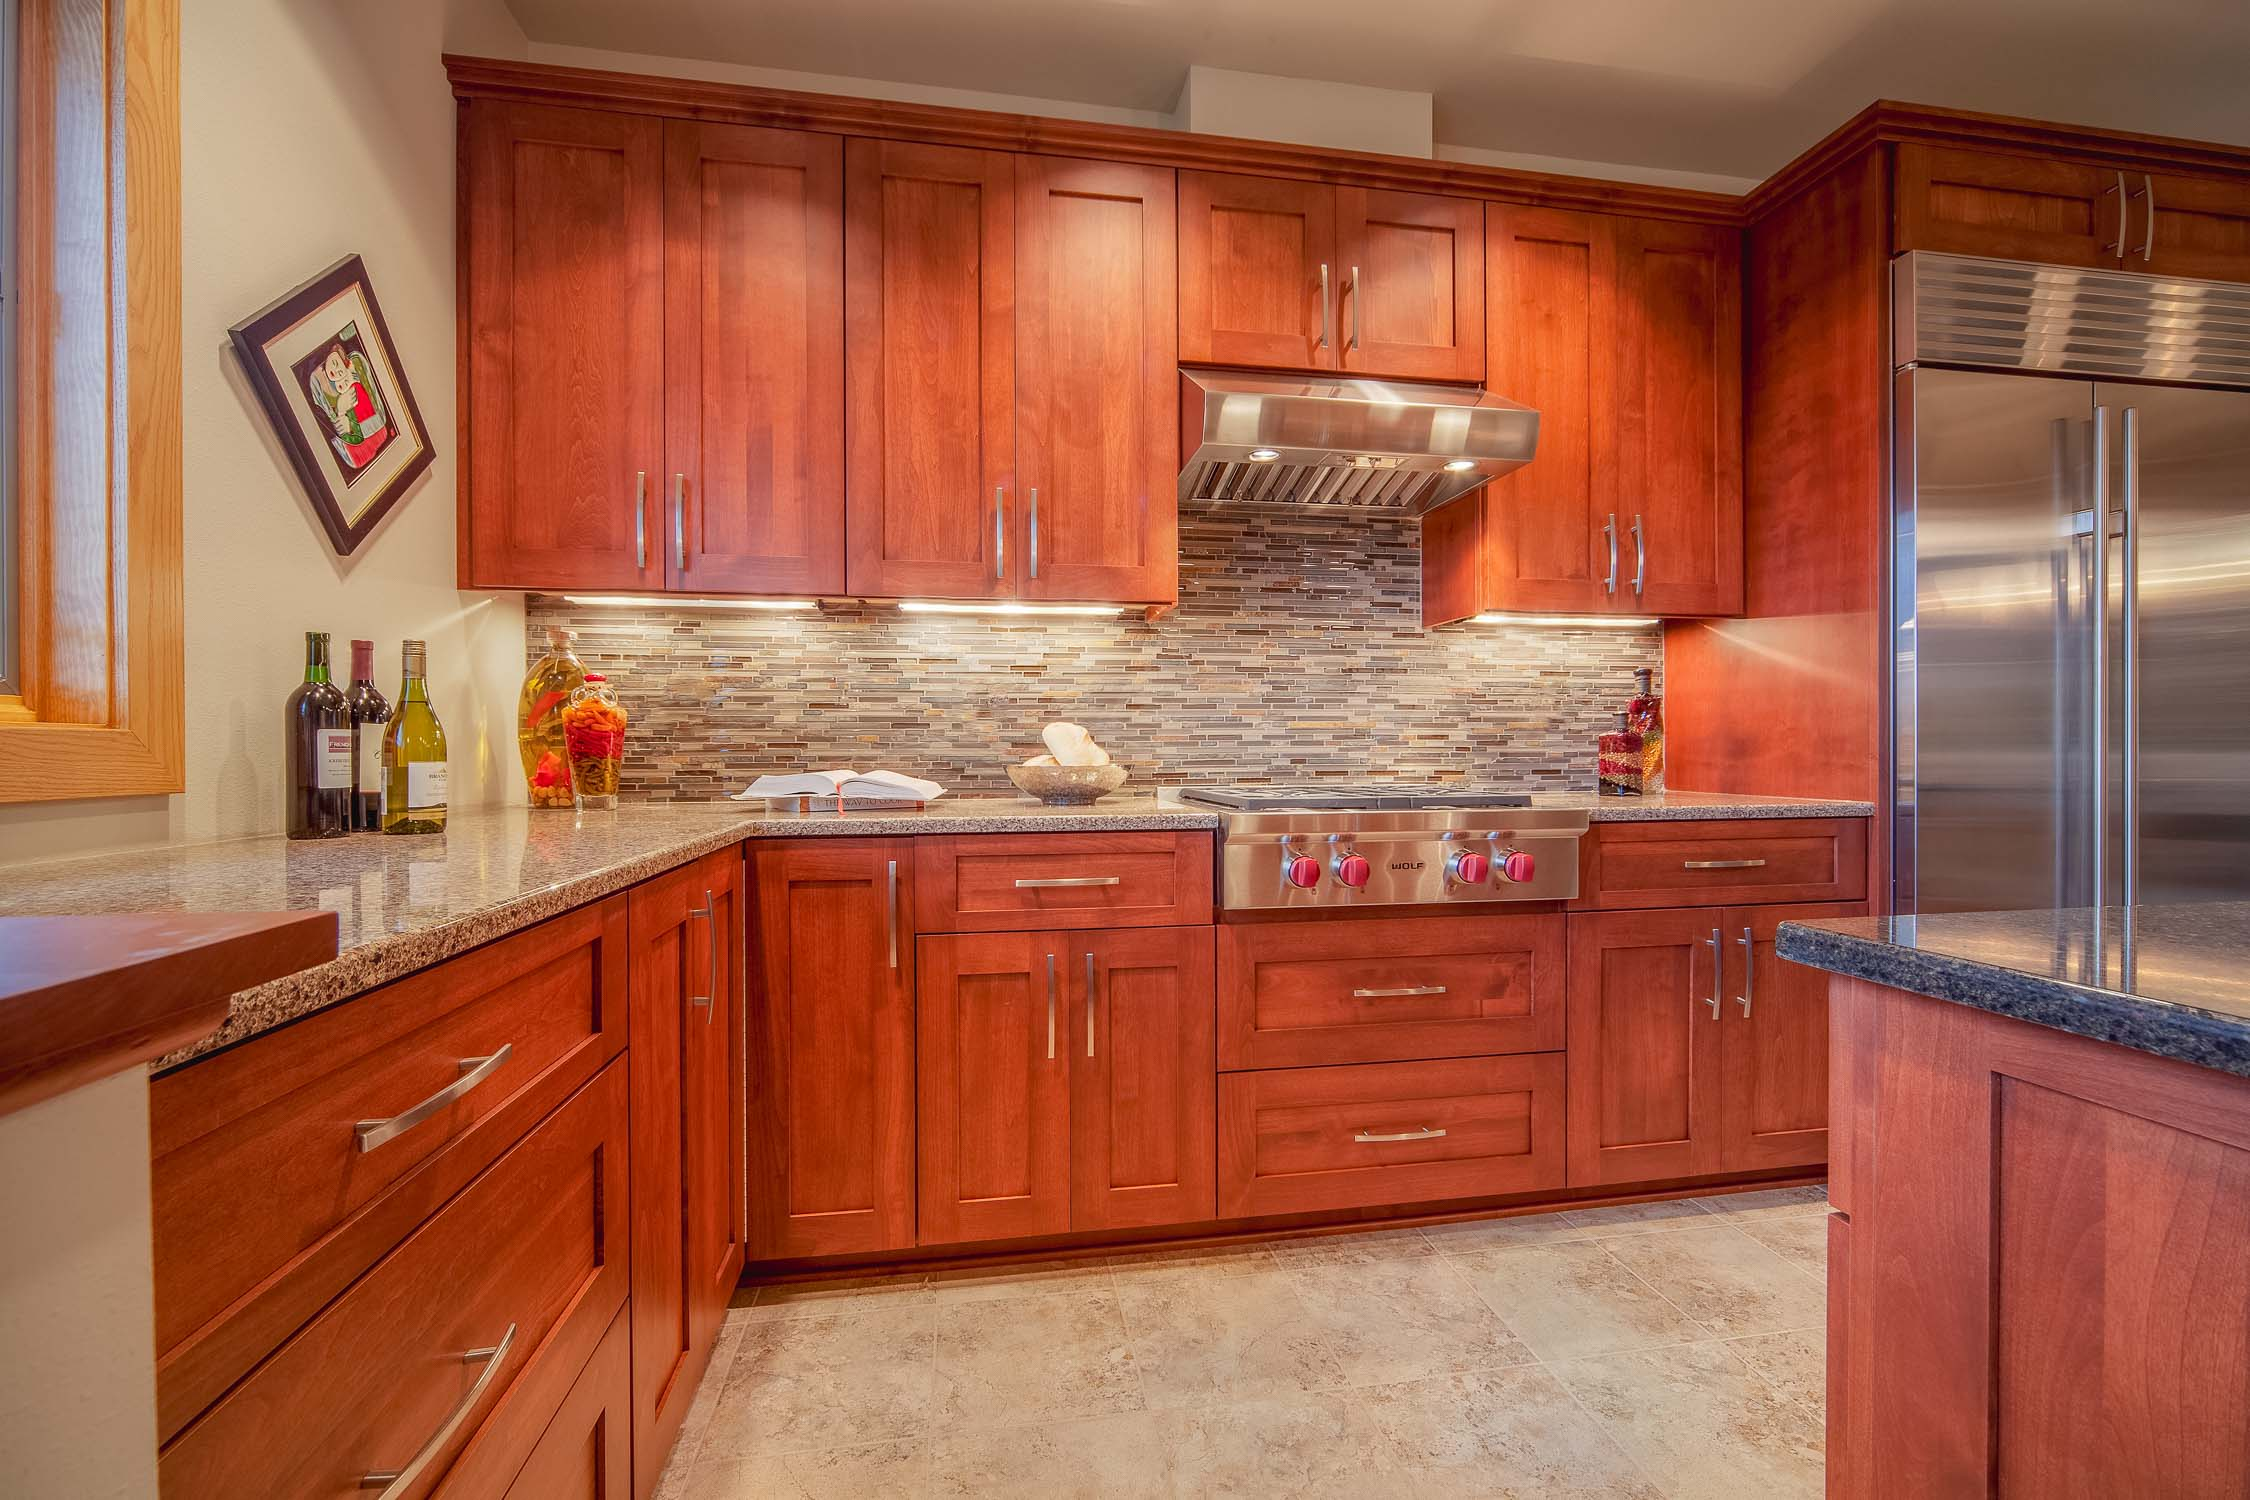 Wolf appliances, range, cooktop and range hood, Kitchen design, Madison, WI.